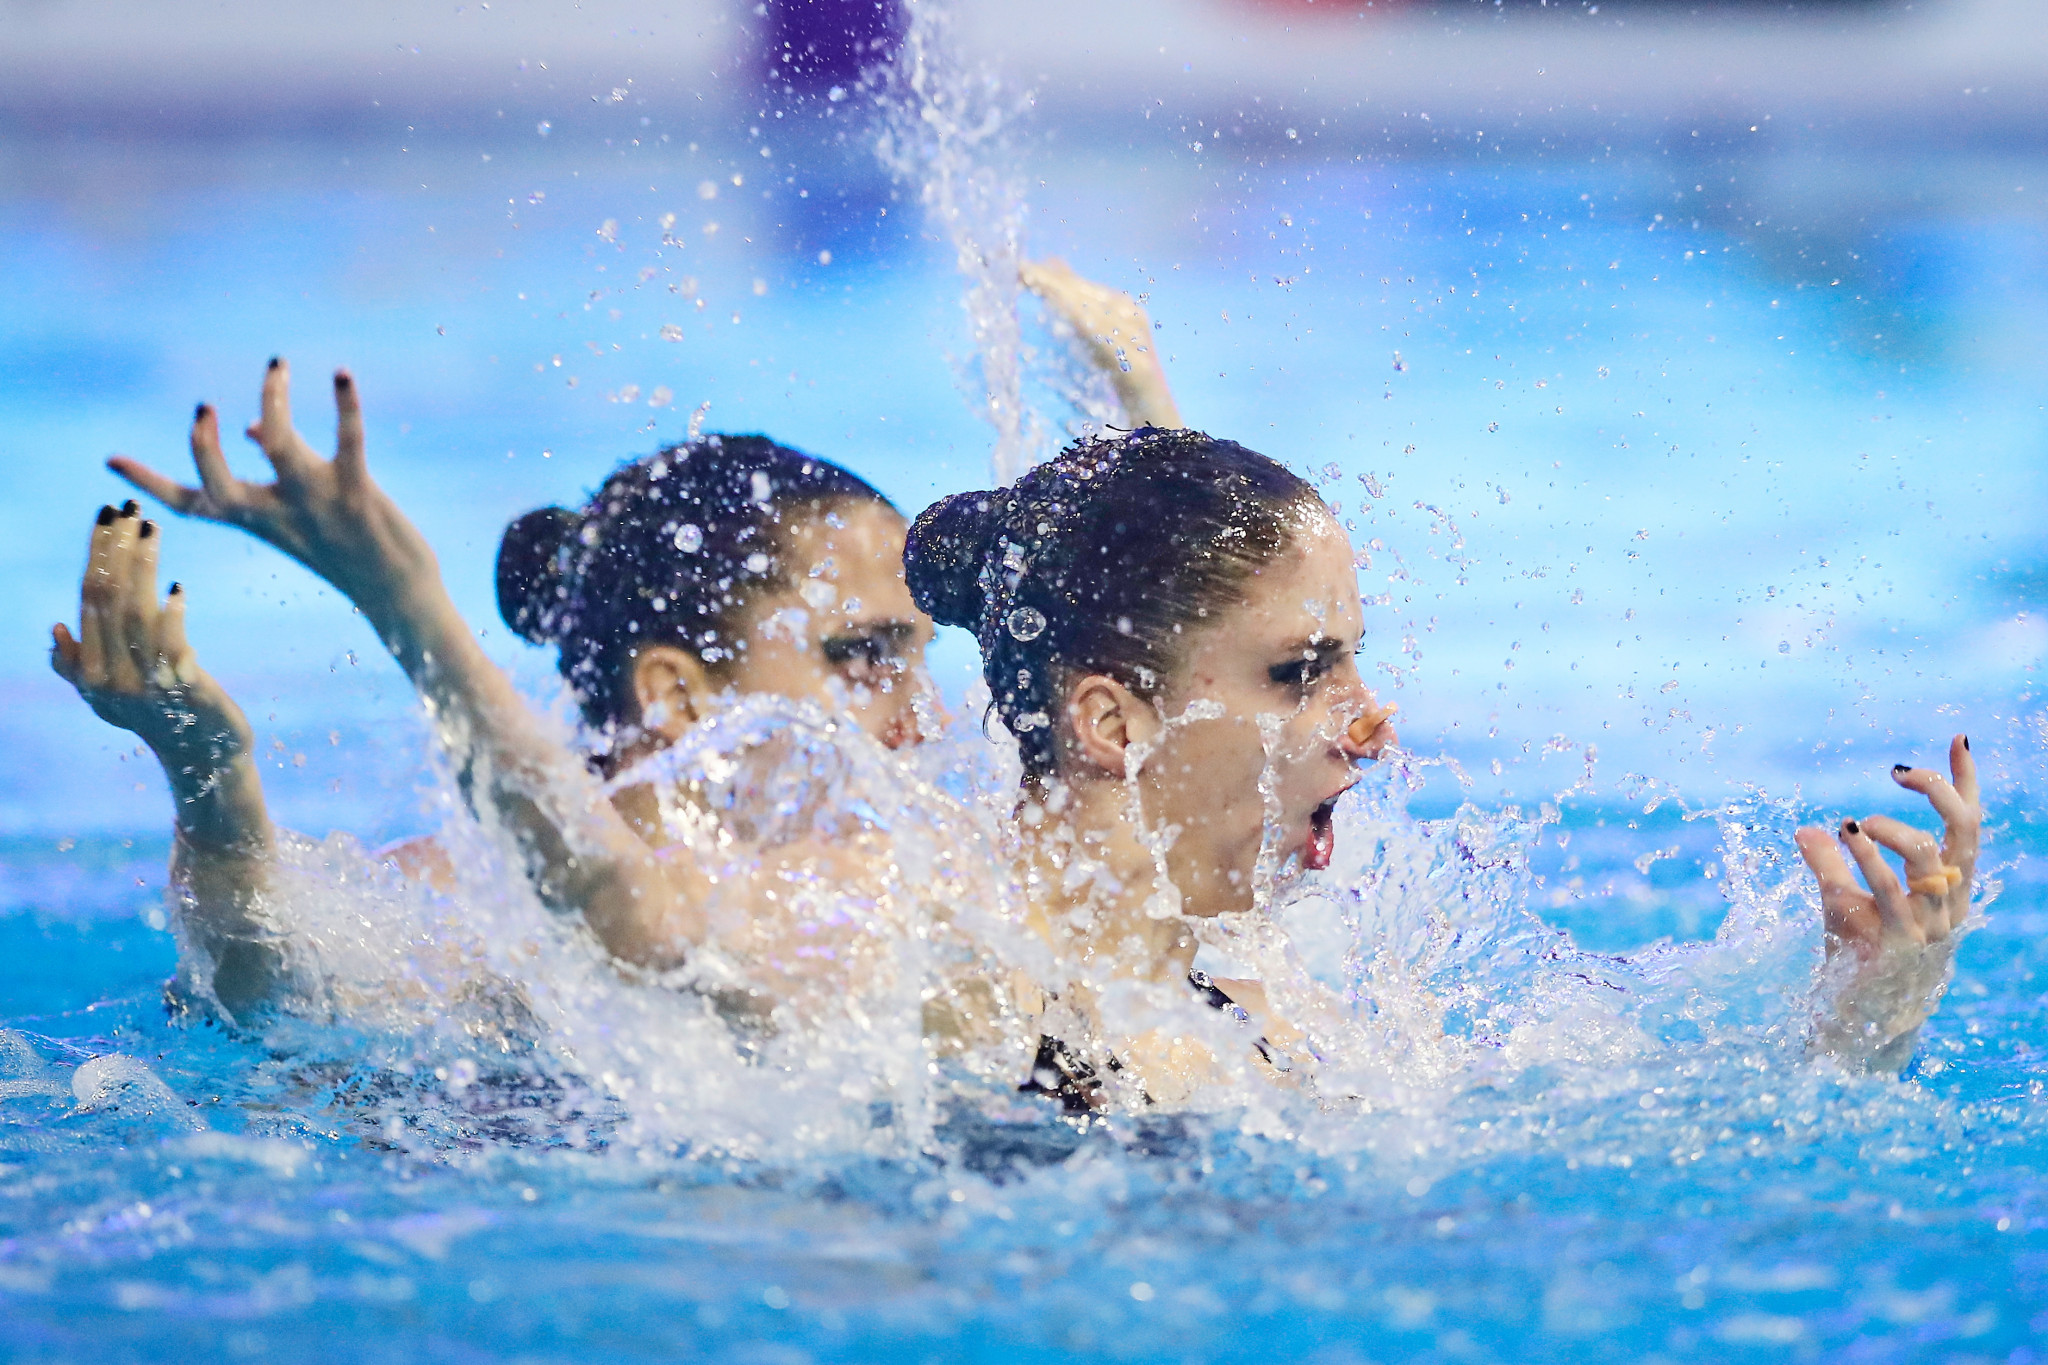 Austria top qualifiers for duet final at Artistic Swimming Olympic Games Qualifying Tournament